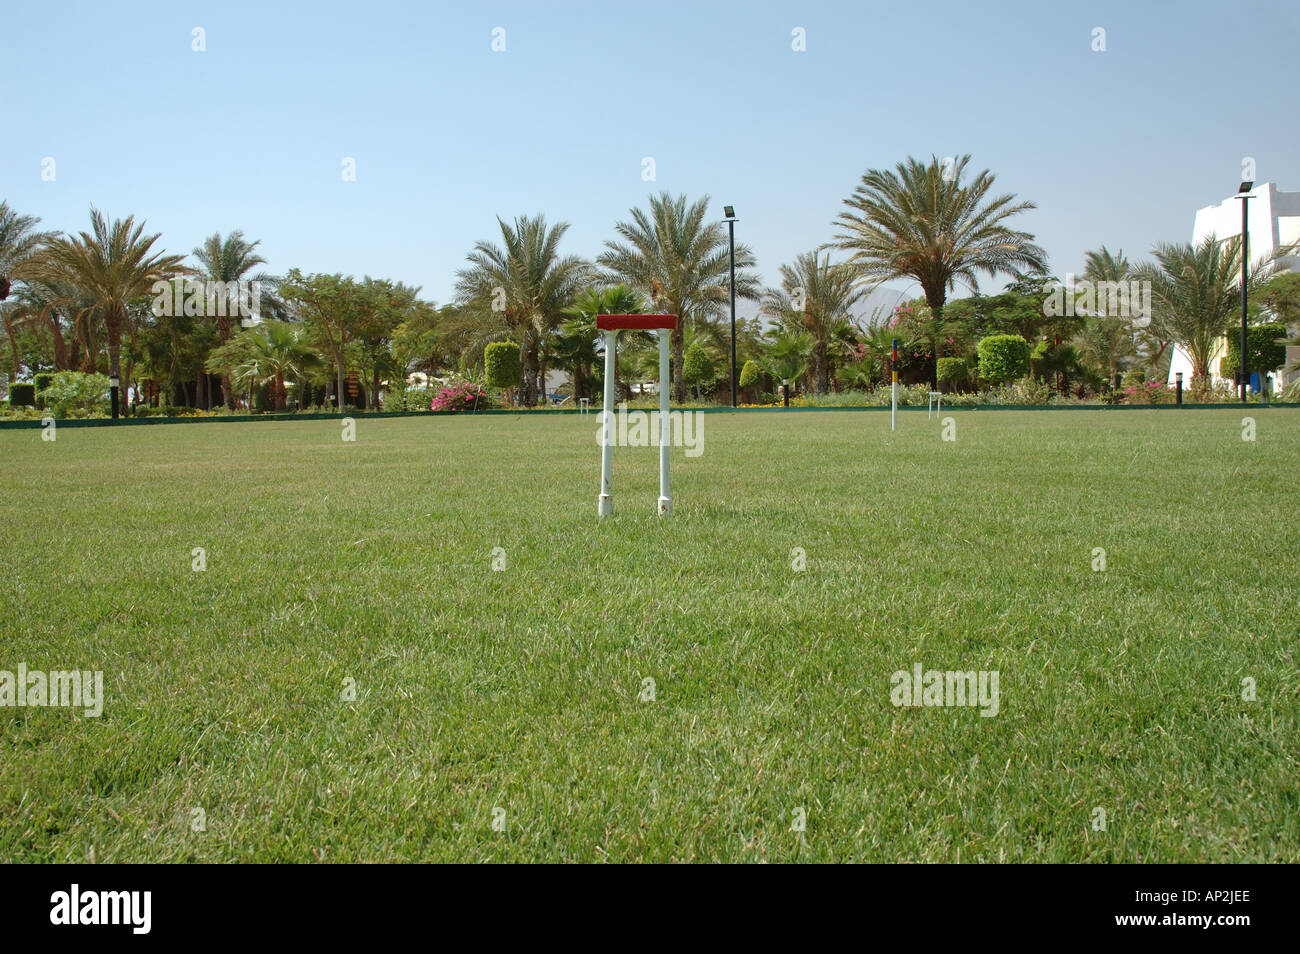 The croquet lawn at the Hilton Coral Resort Nuweiba Egypt - Stock Image